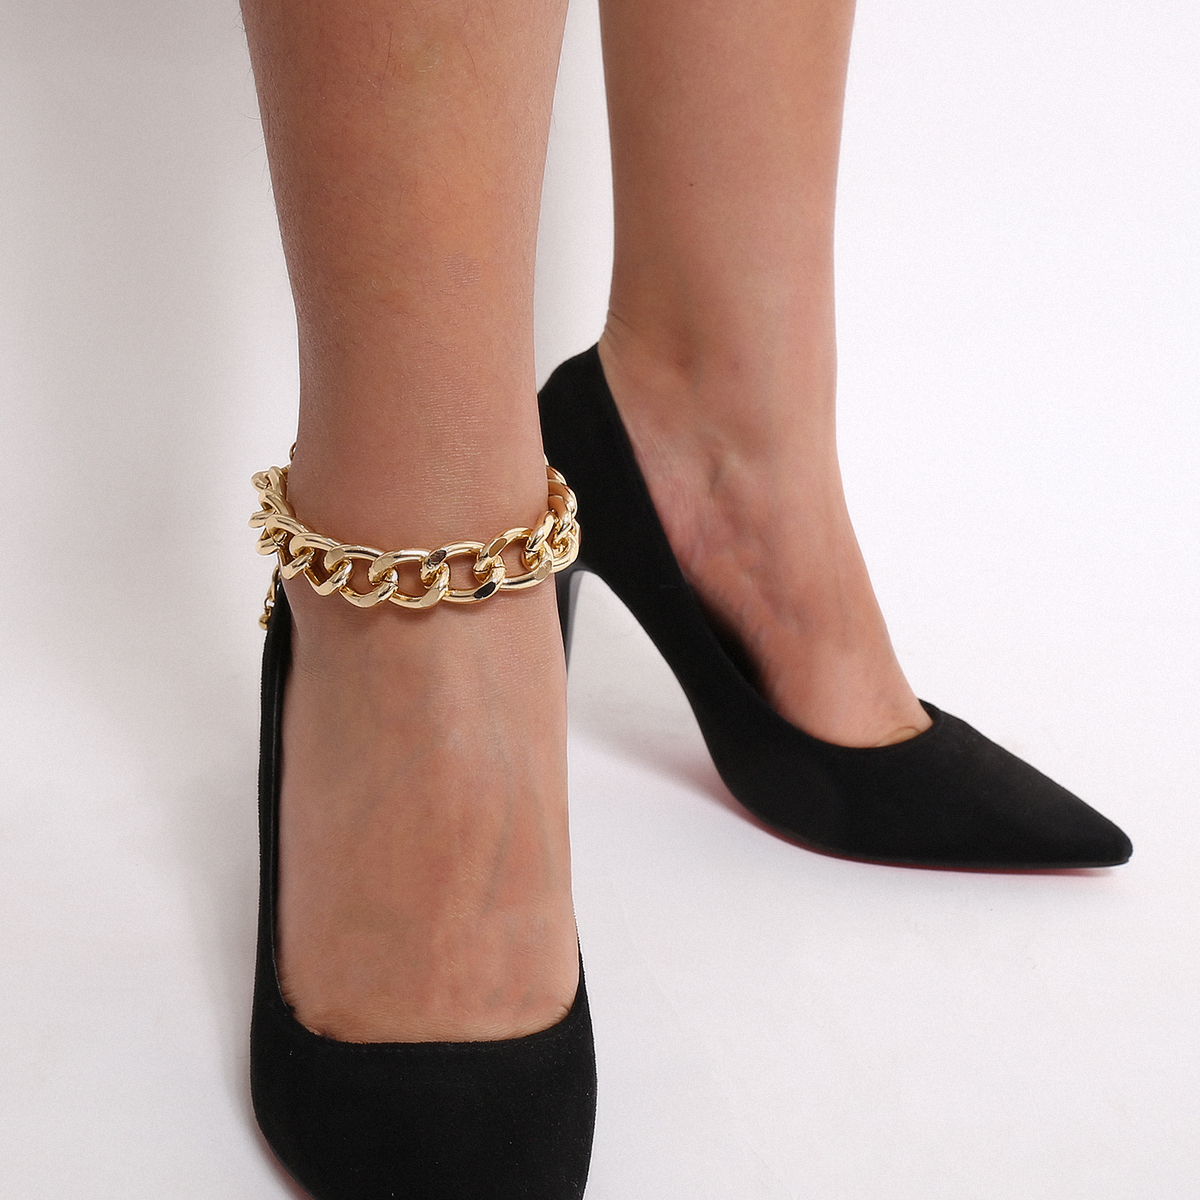 Lacteo Punk Thick Chunky Chain Anklet for Women Statment Fashion Anklet Hip Hop Golden Cross Chain Charm Anklet Female Jewelry 1